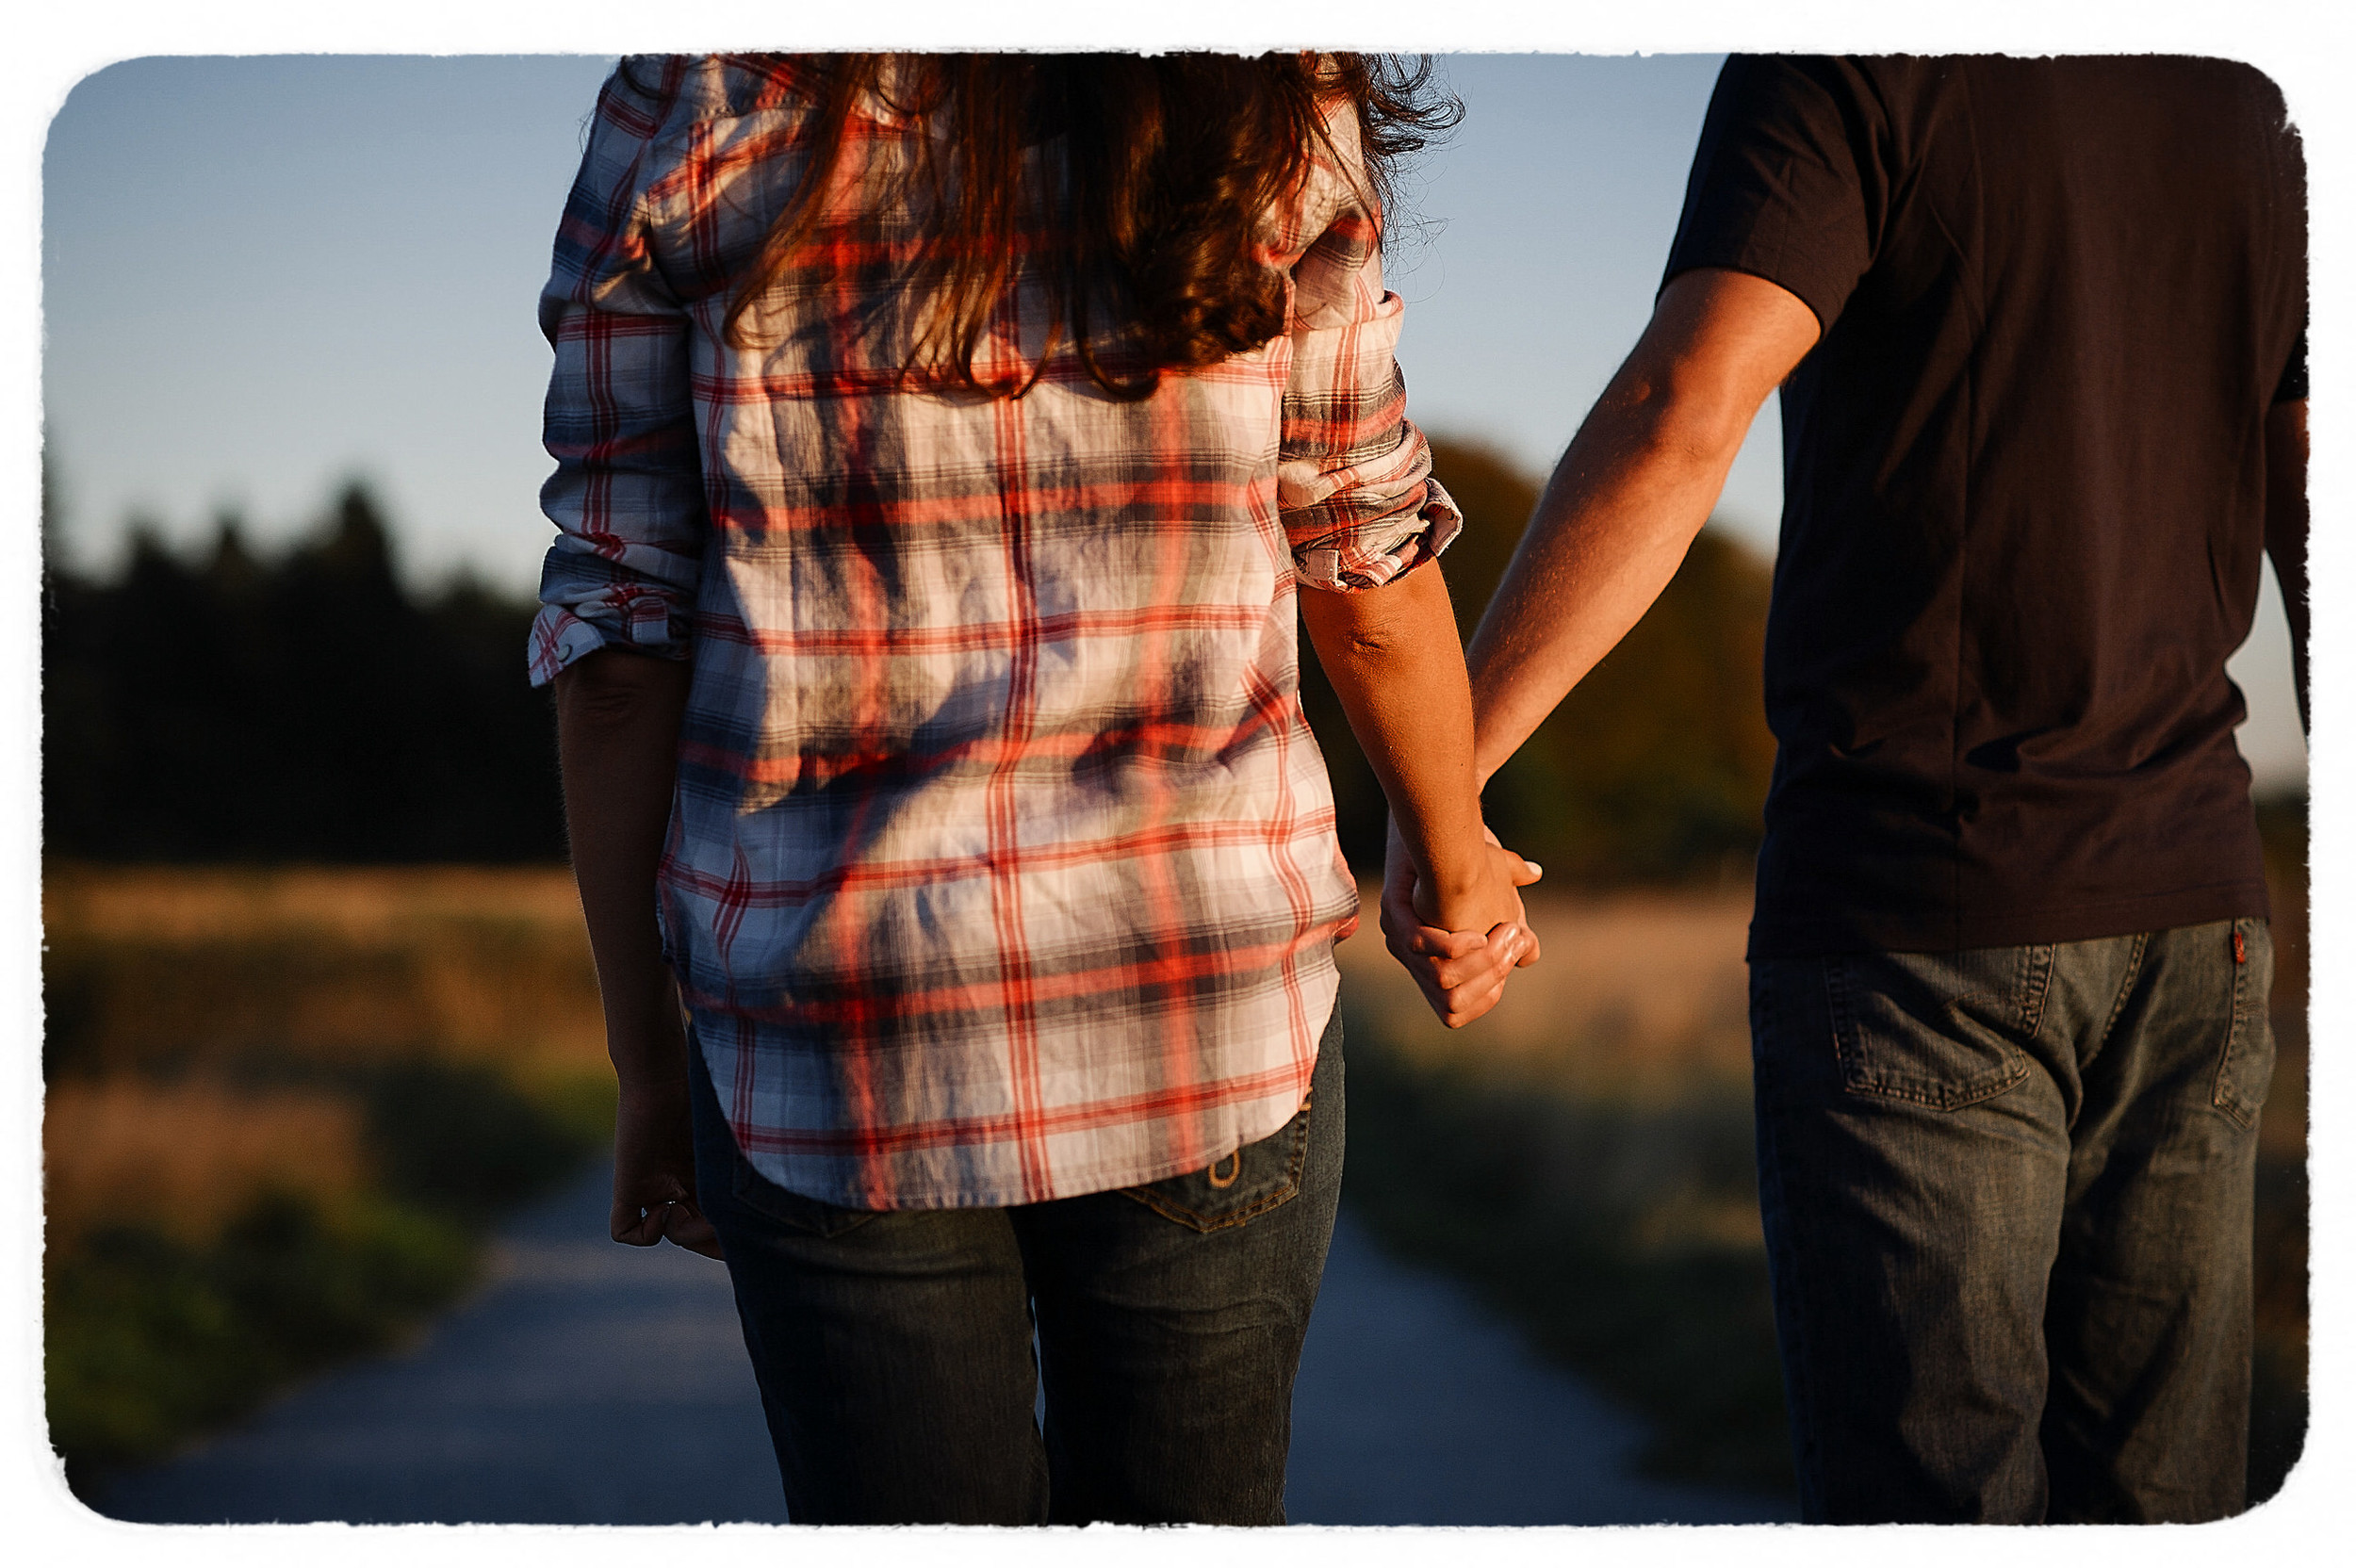 Kelly&Mike-EngagementSession-OriginalCollection-140Film.jpg